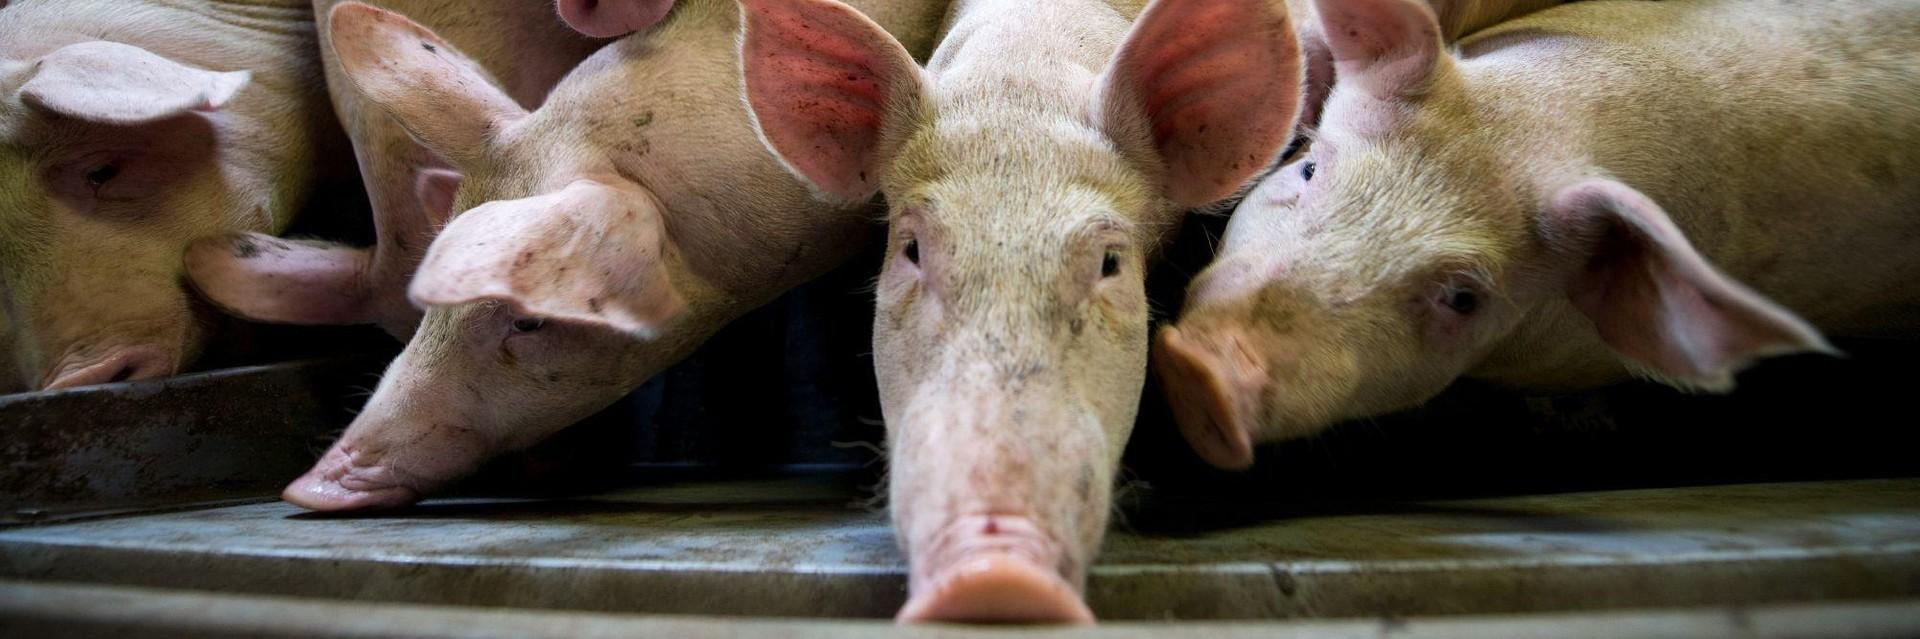 Factory farming of pigs